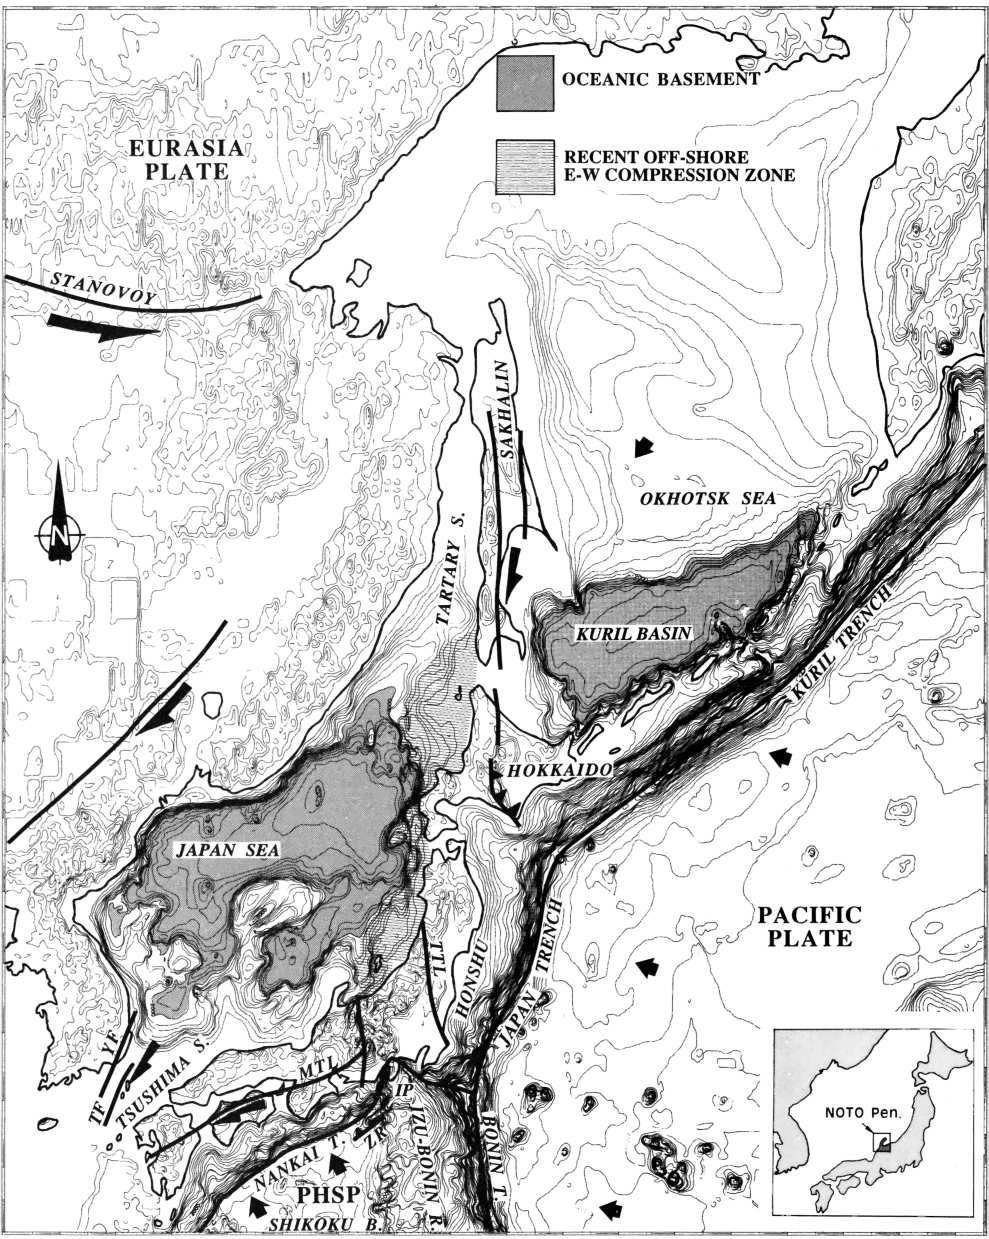 2702 FOURNIER ET AL.: NEOGENE DEXTRAL MOTION IN SAKHALIN AND JAPAN SEA EURASIAI PLATE OCEANIC BASEMENT RECENT OFF-SHORE E-W COMPRESSION ZONE OKHOTSK KURIL BASIN ::JAPAN SEA-! /PACIFIC PLATE Fig. 1.